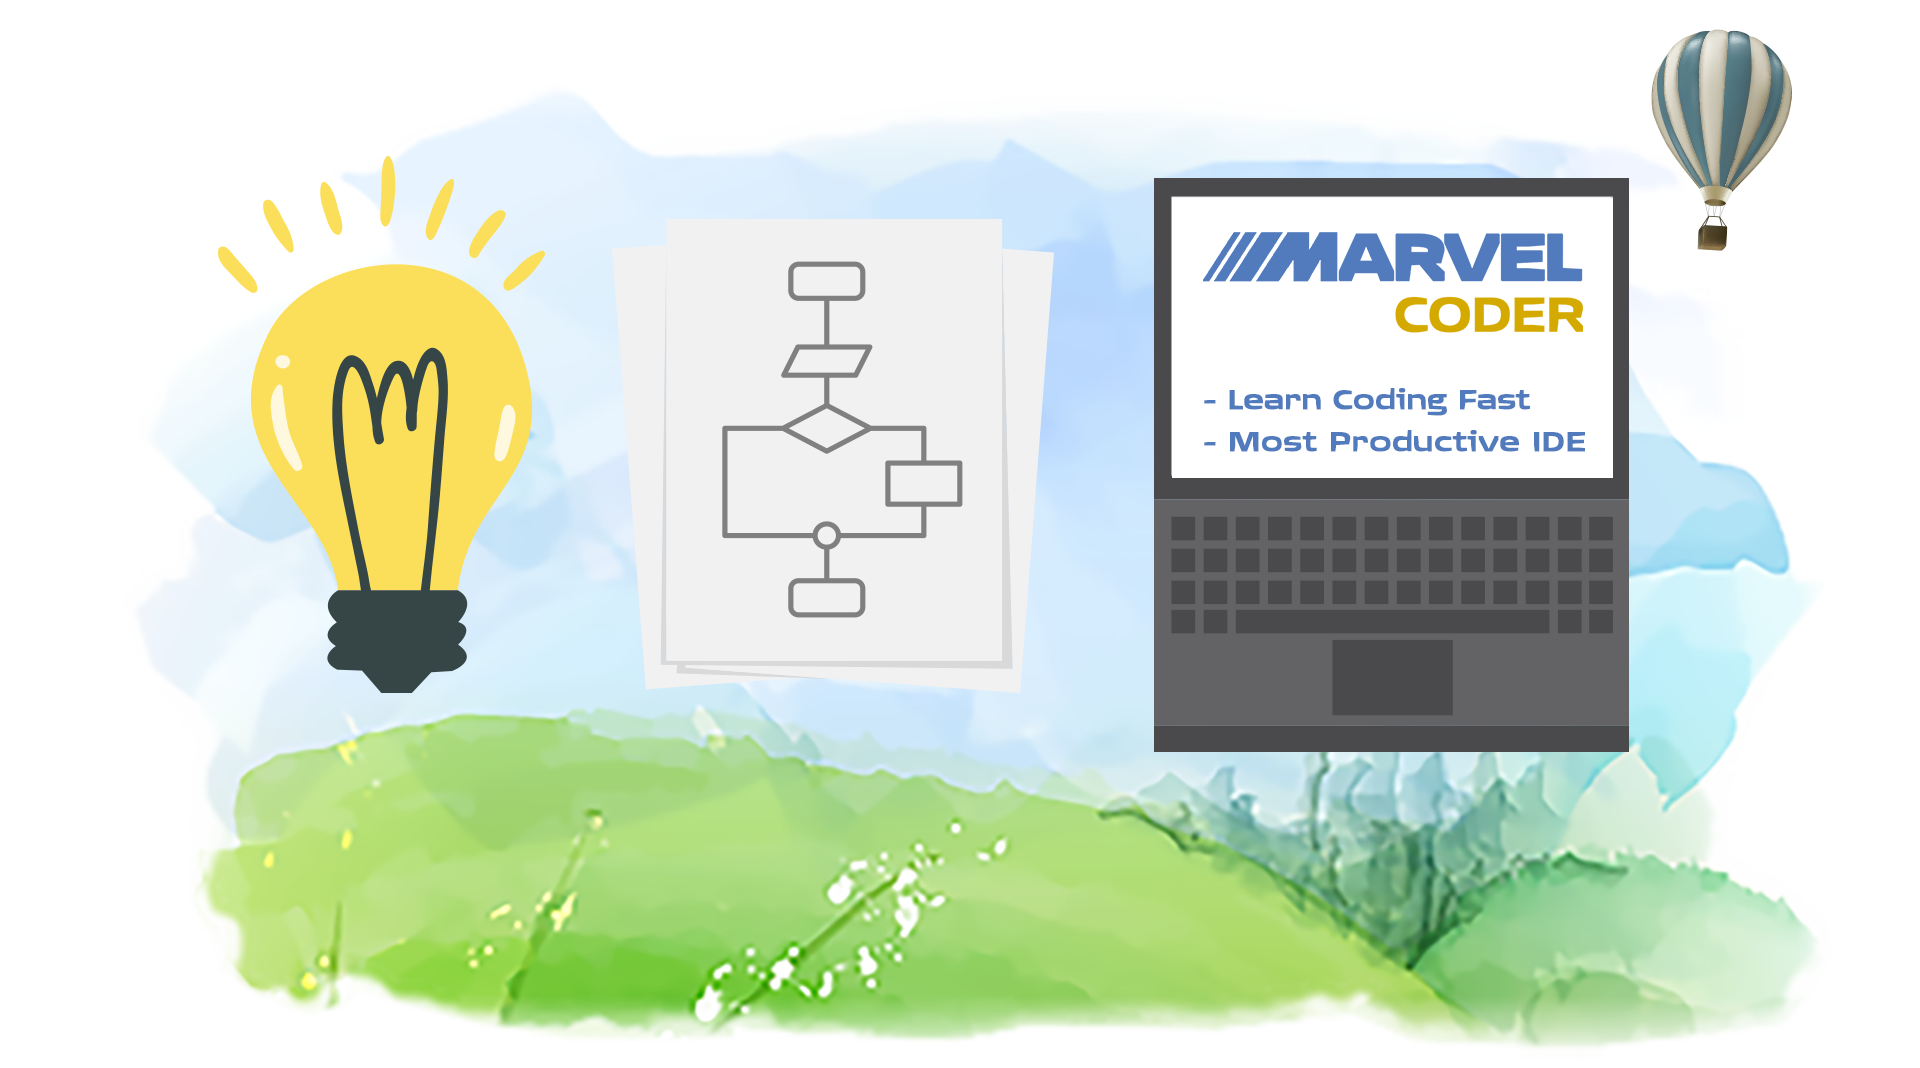 MarvelCoder — Learn Coding Fast Screenshot